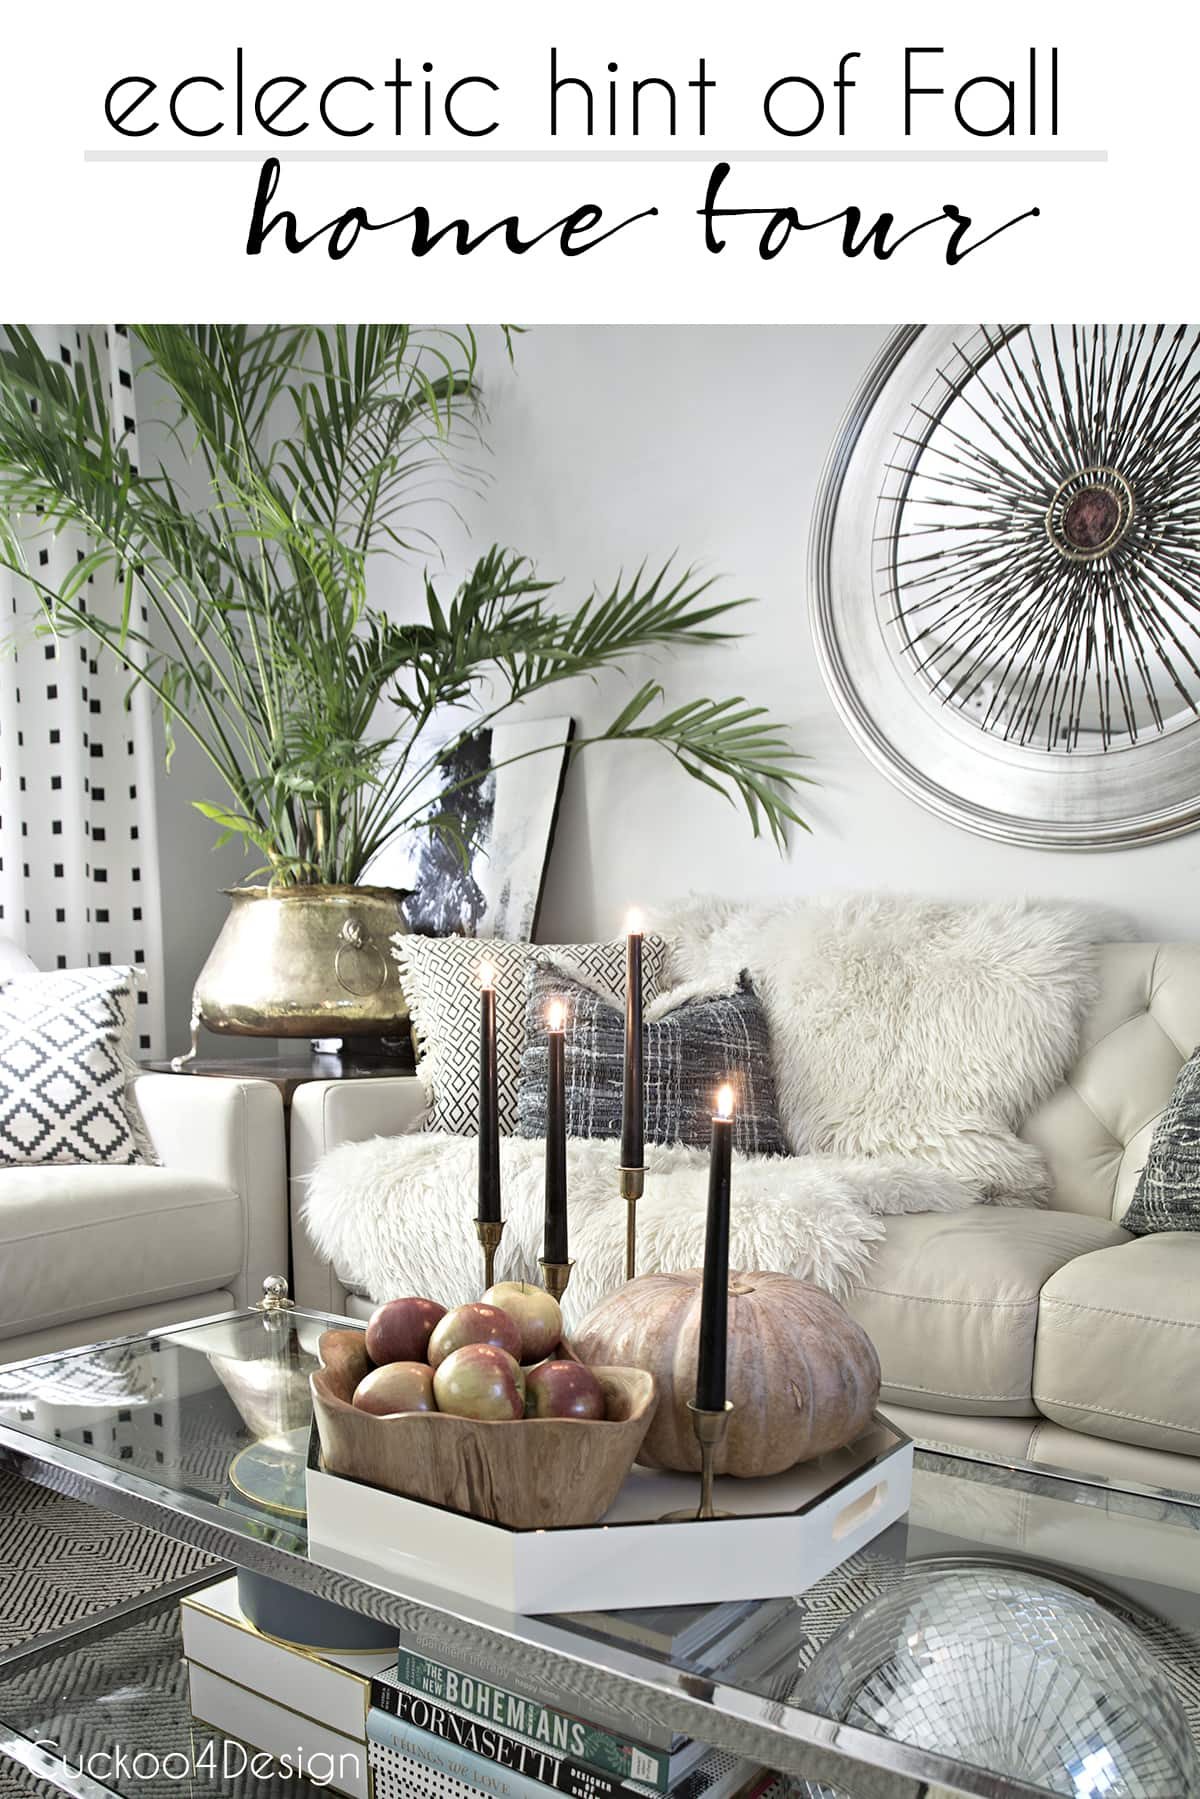 modern and minimal fall decor in this eclectic home tour